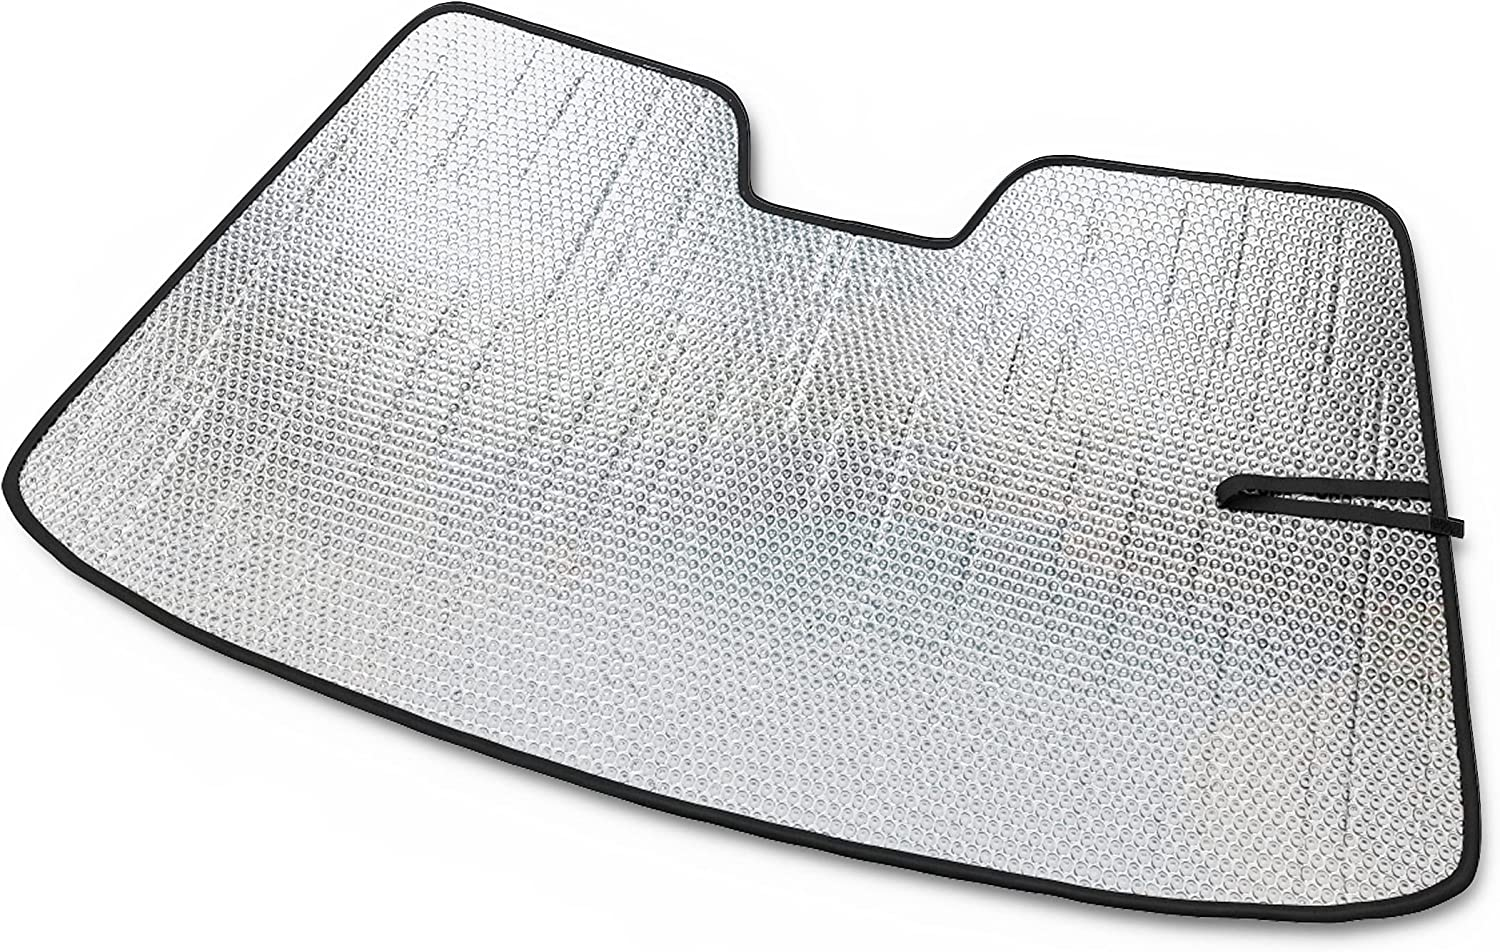 Autotech Park Front Windshield Compatible with Las Vegas Mall 2016-202 Sunshade Translated